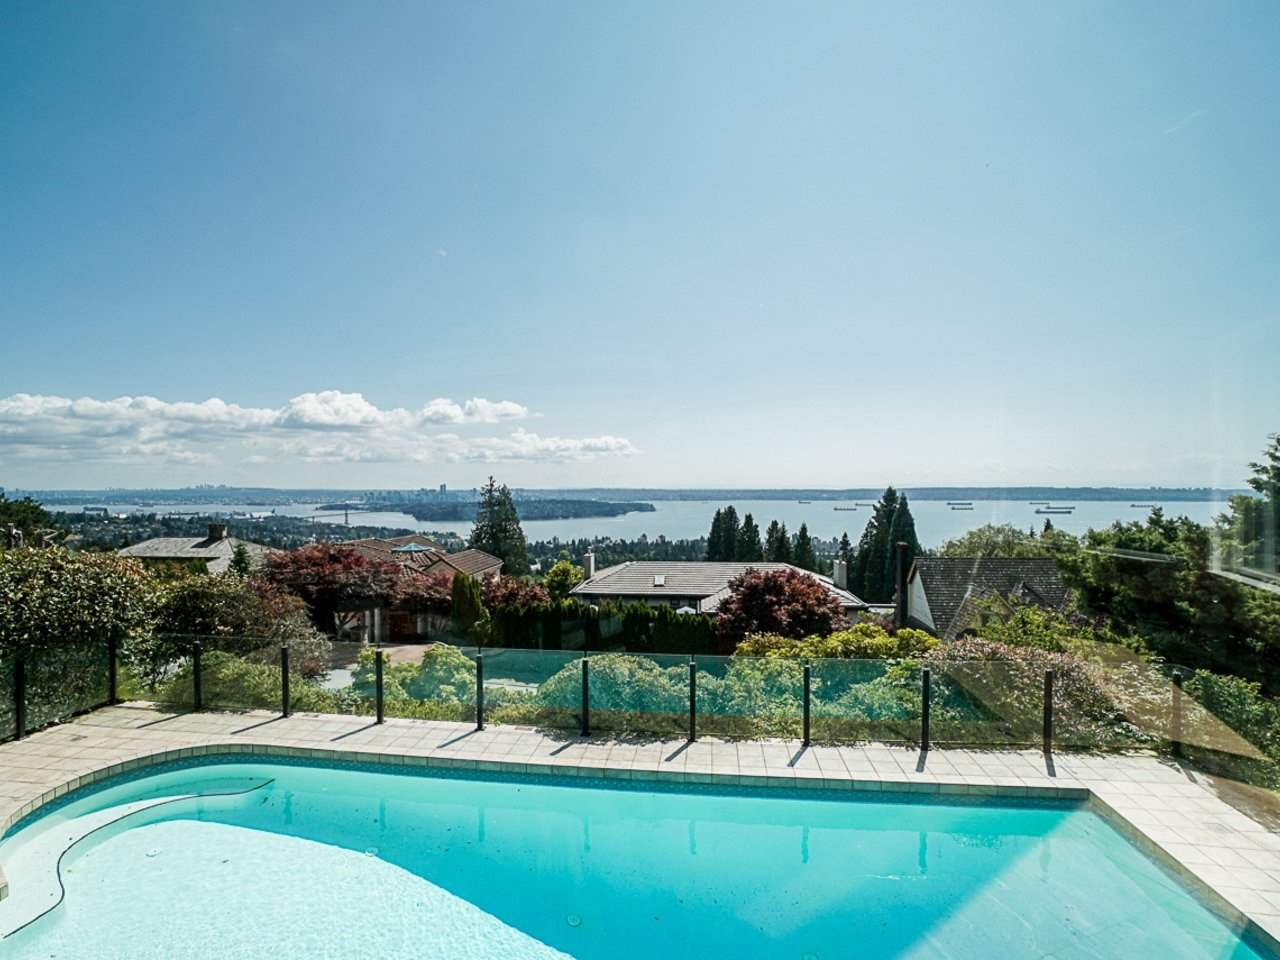 Main Photo: 2339 WESTHILL Drive in West Vancouver: Westhill House for sale : MLS®# R2528029